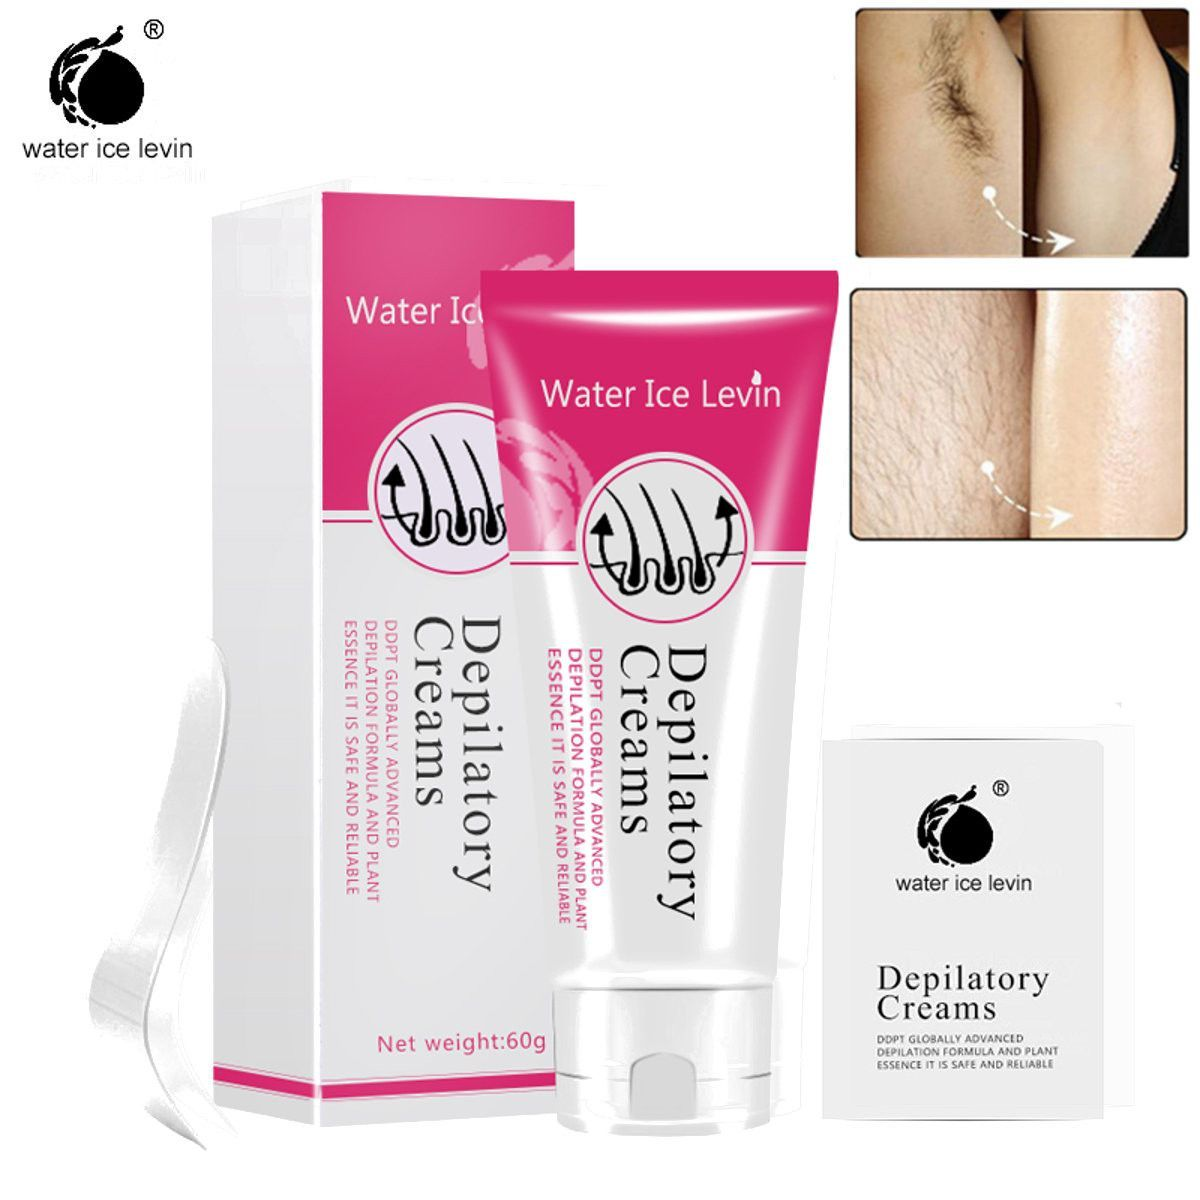 Water Ice Levin Painless Hair Removal Cream Legs Armpit Depilatory